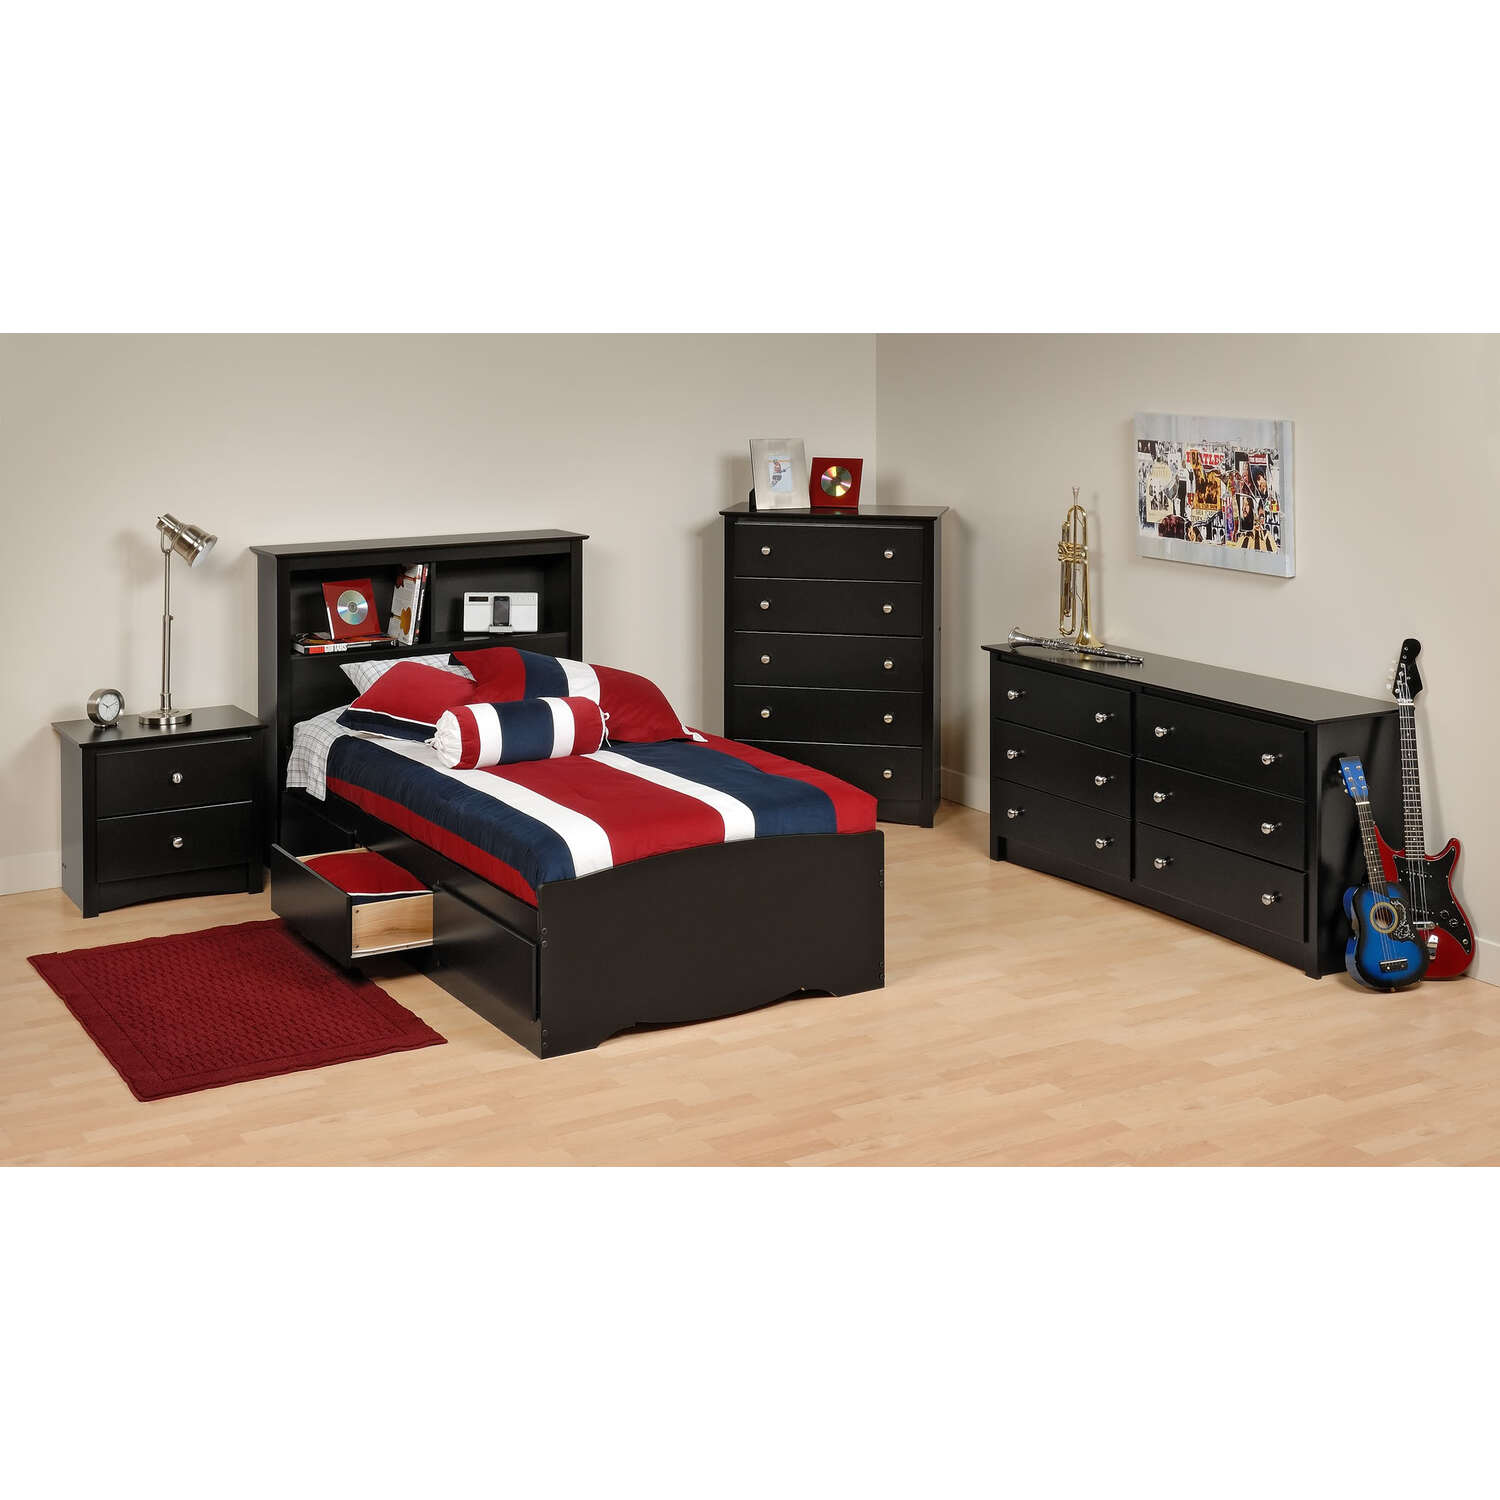 Prepac Black Sonoma Twin Bedroom Set by OJ Commerce 699